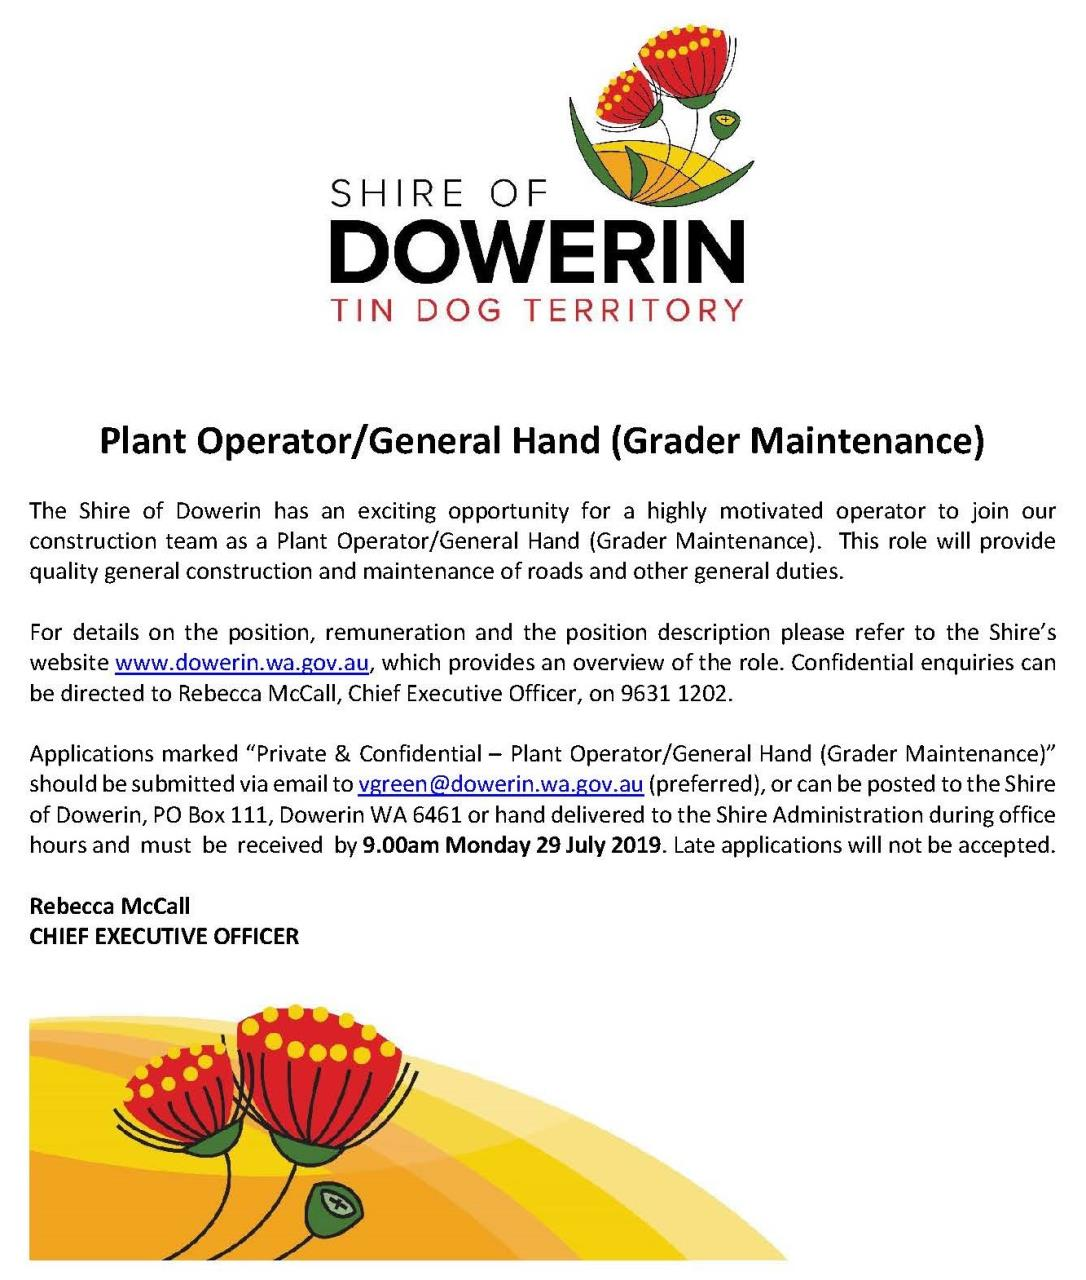 Employment Opportunity - Plant Operator / General Hand (Grader Maintenance)